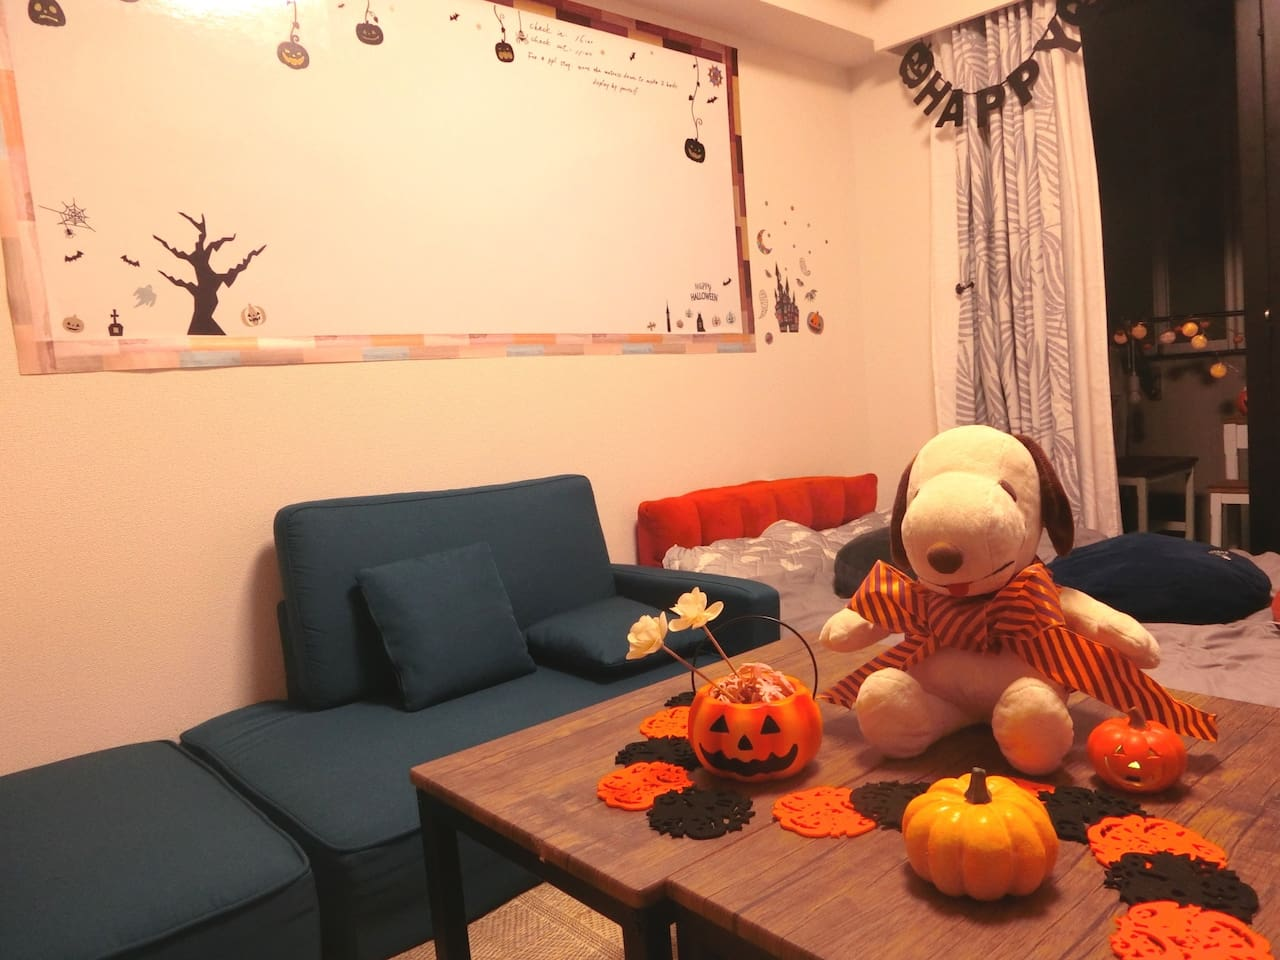 We are happy to welcome your visiting of our Halloween decoration room until November.